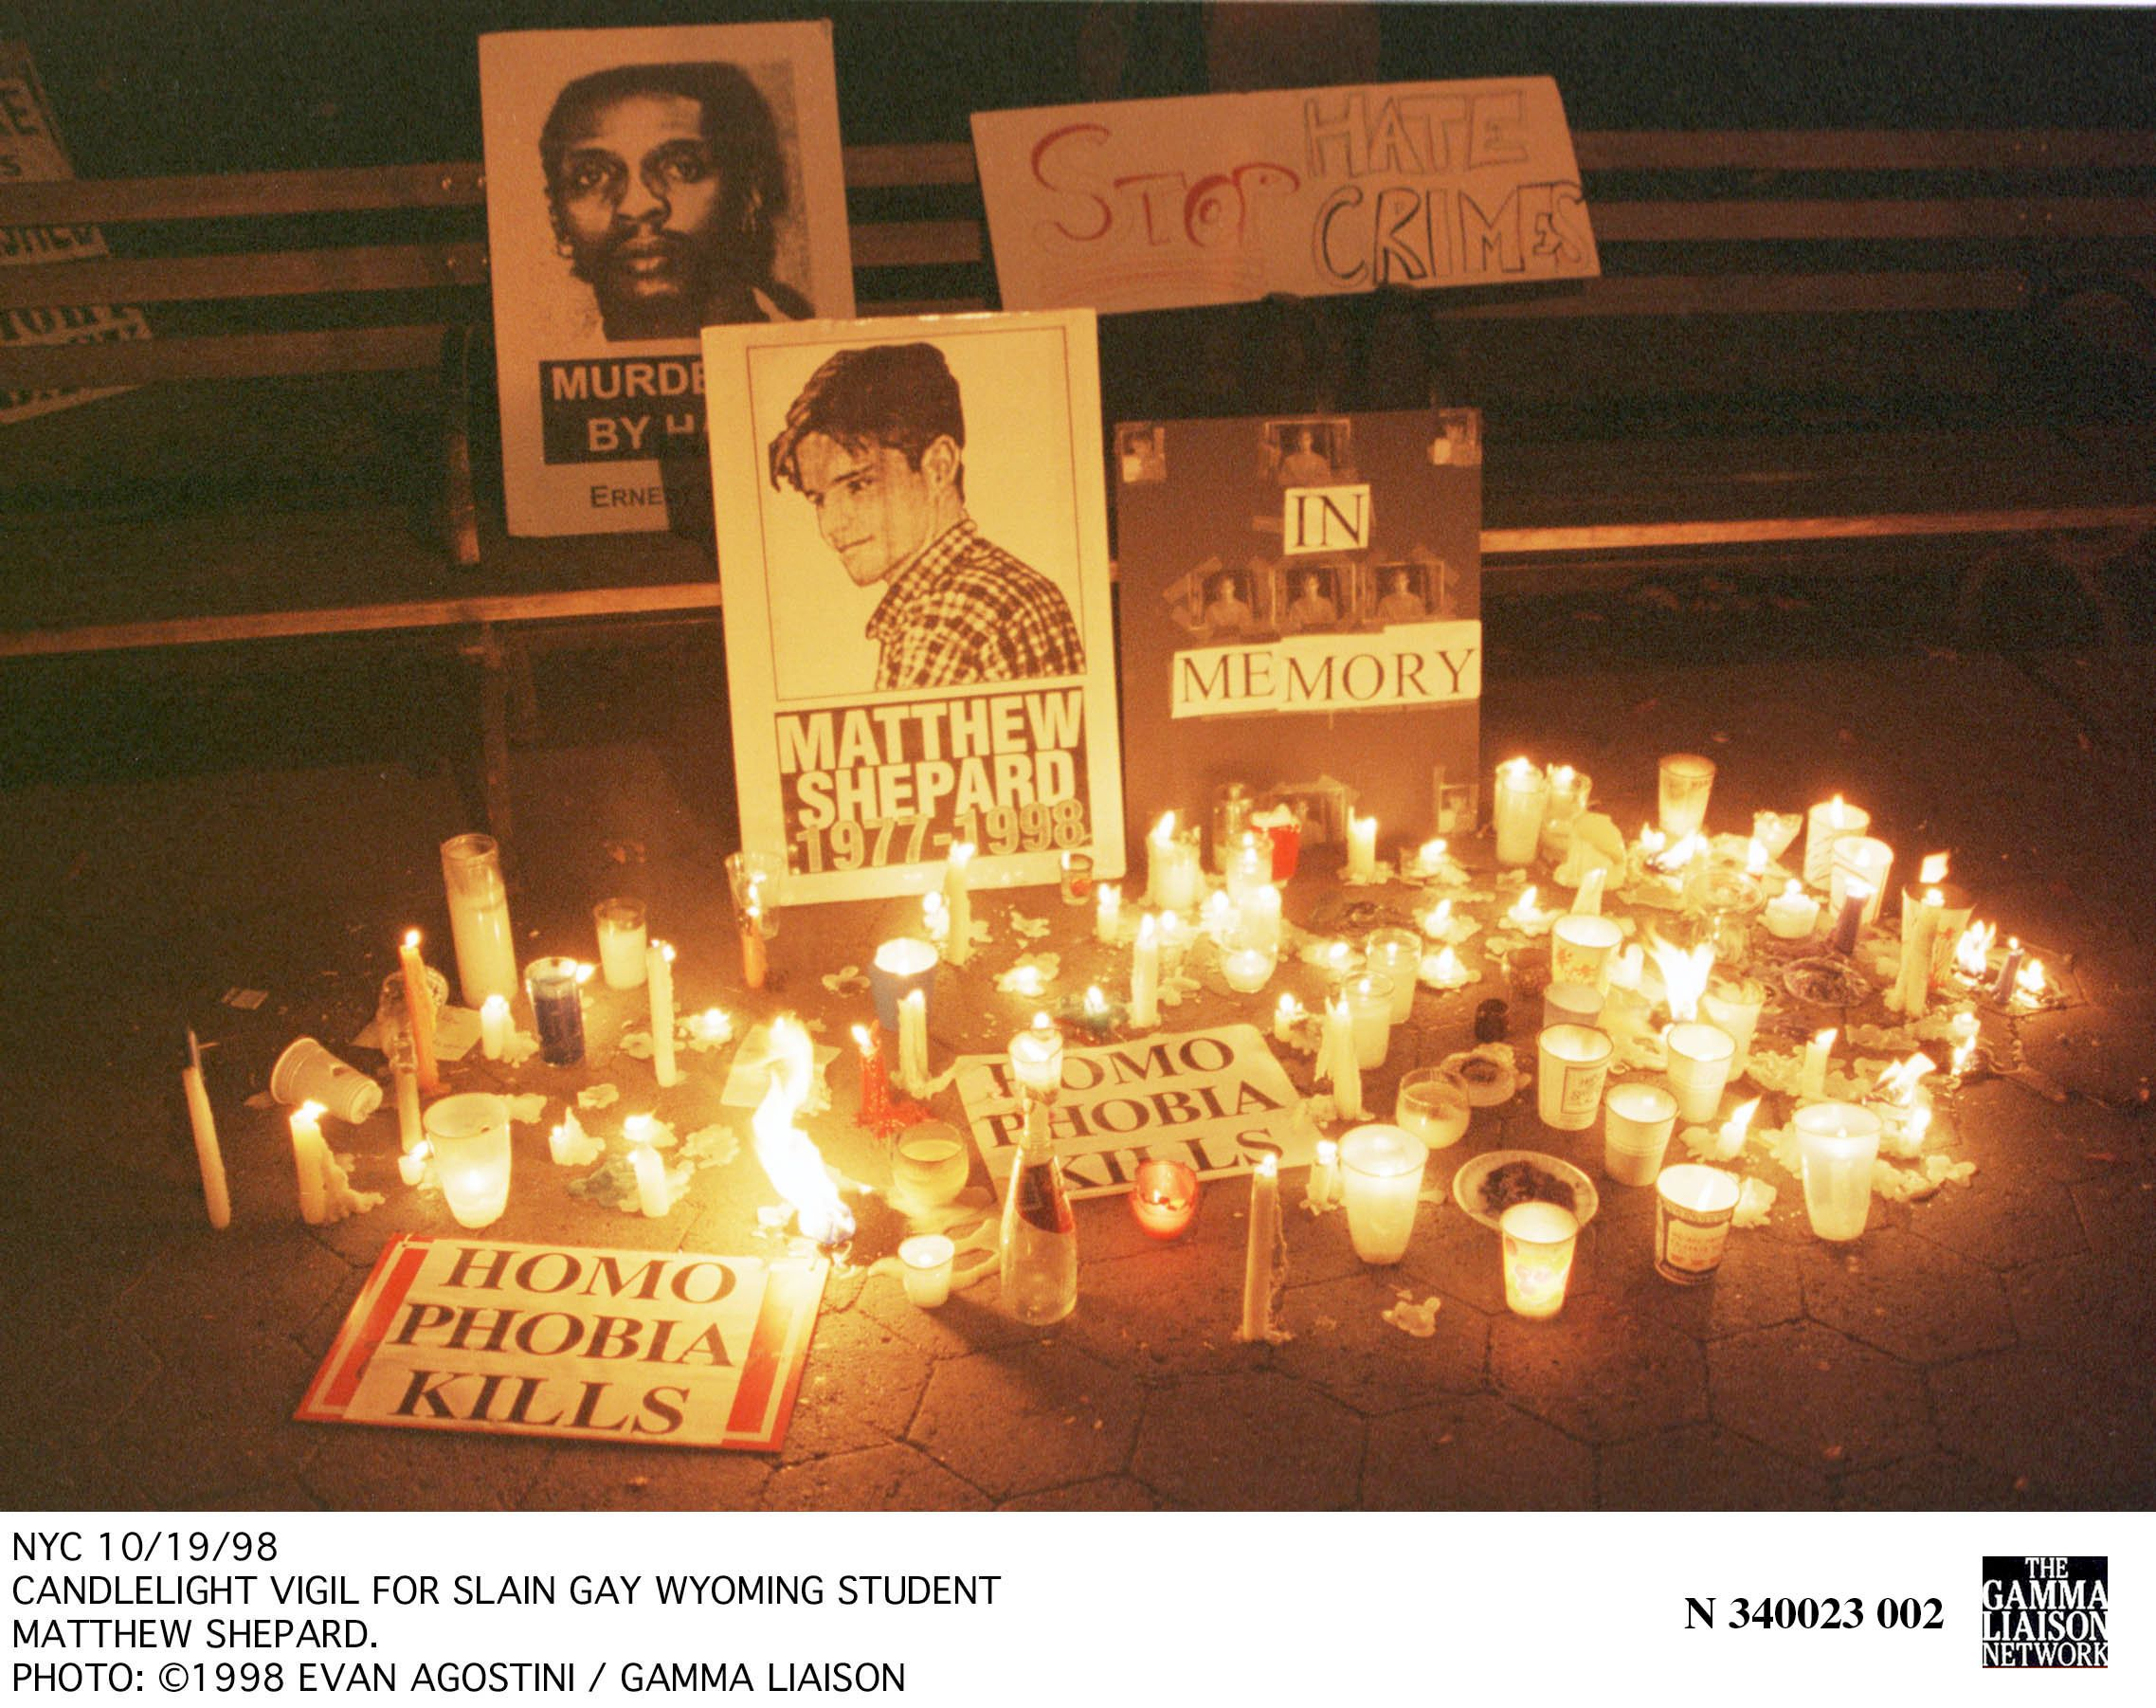 A candlelight vigil was held in New York for Matthew Shepard about a month after he was beaten to death...